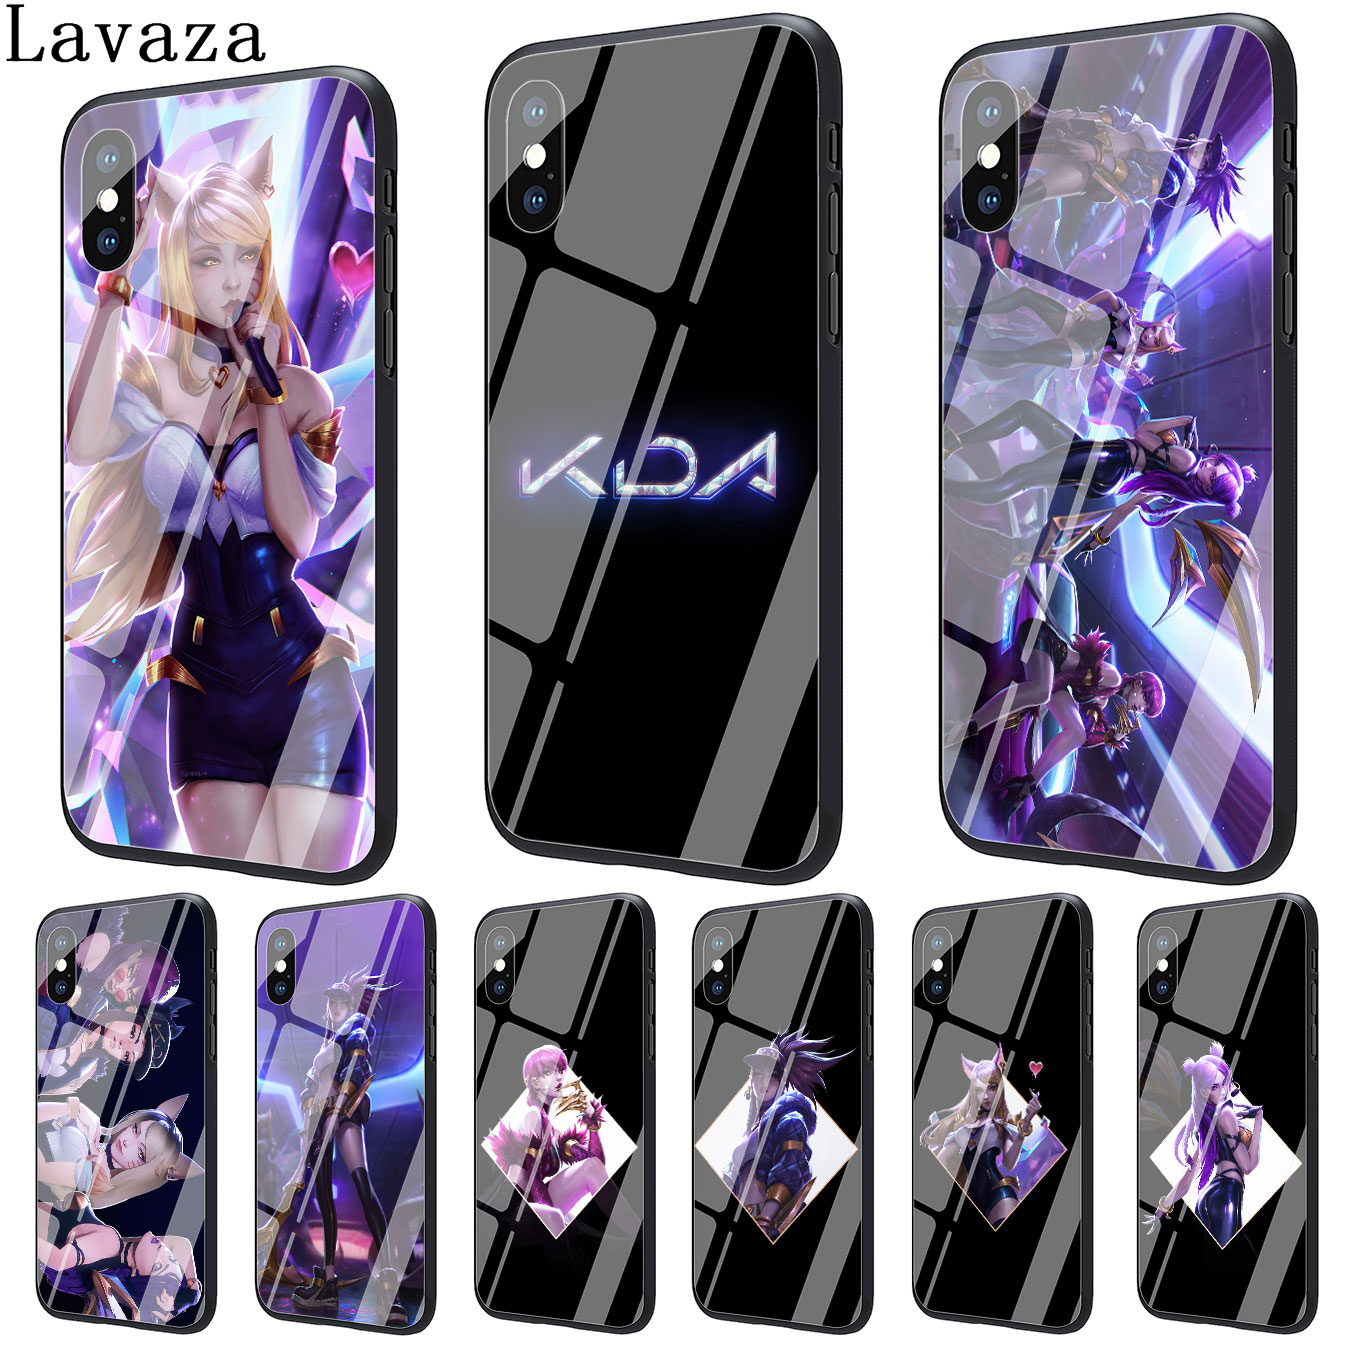 Lavaza lol kda kaisa Ahri akali Tempered Glass Phone Cover Case for Apple iPhone XR XS Max X 8 7 6 6S Plus 5 5S SE Cases